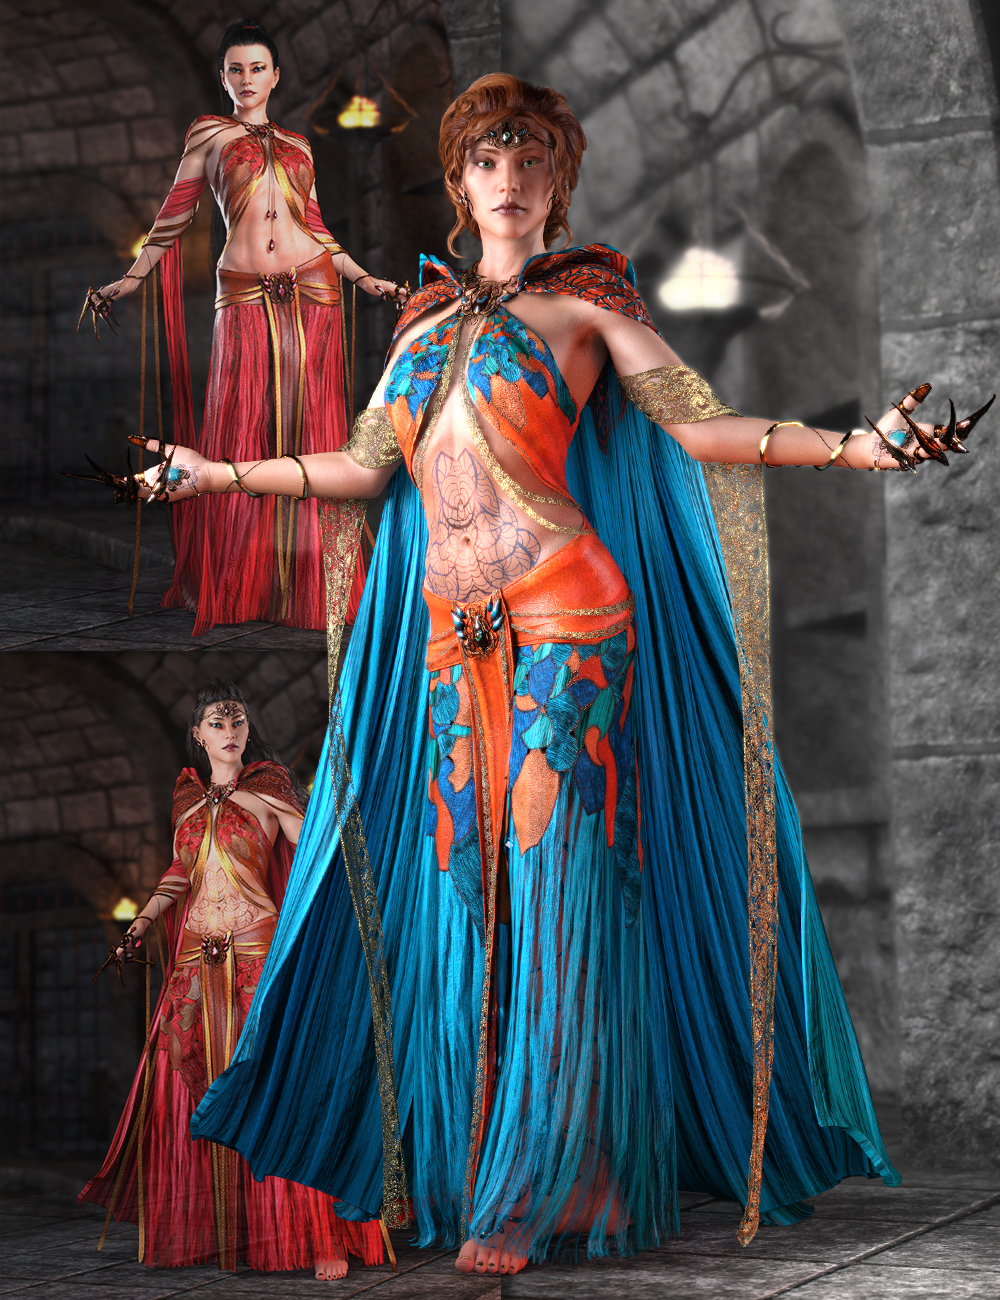 dForce Steelwitch Bundle for Genesis 8 and 8.1 Female by: ArkiShox-Design, 3D Models by Daz 3D